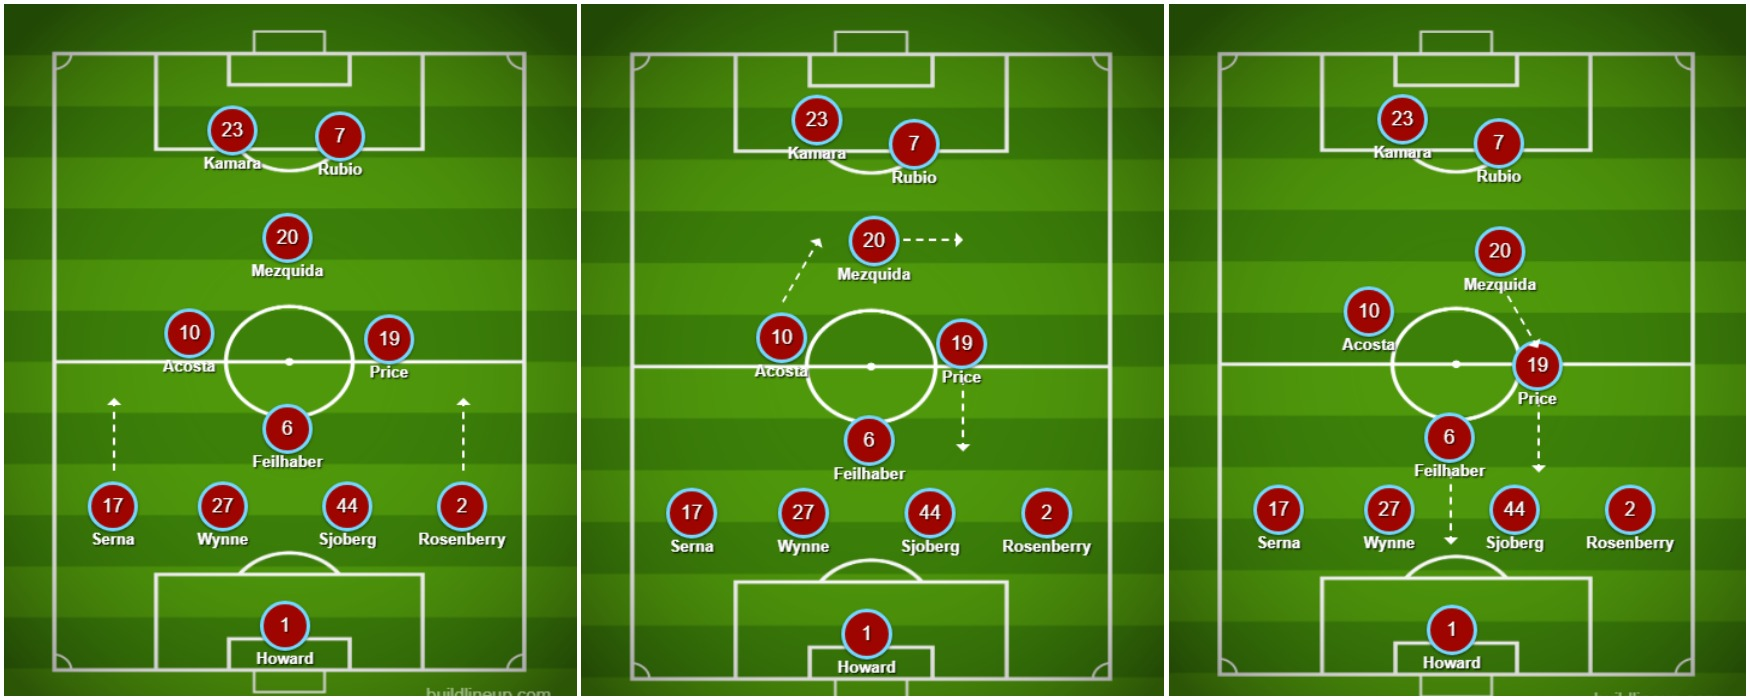 From Left to Right: The Colorado Rapids base 4-4-2 diamond, Players rotate to allow for duel attacking and defending roles, The diamond becomes truncated.